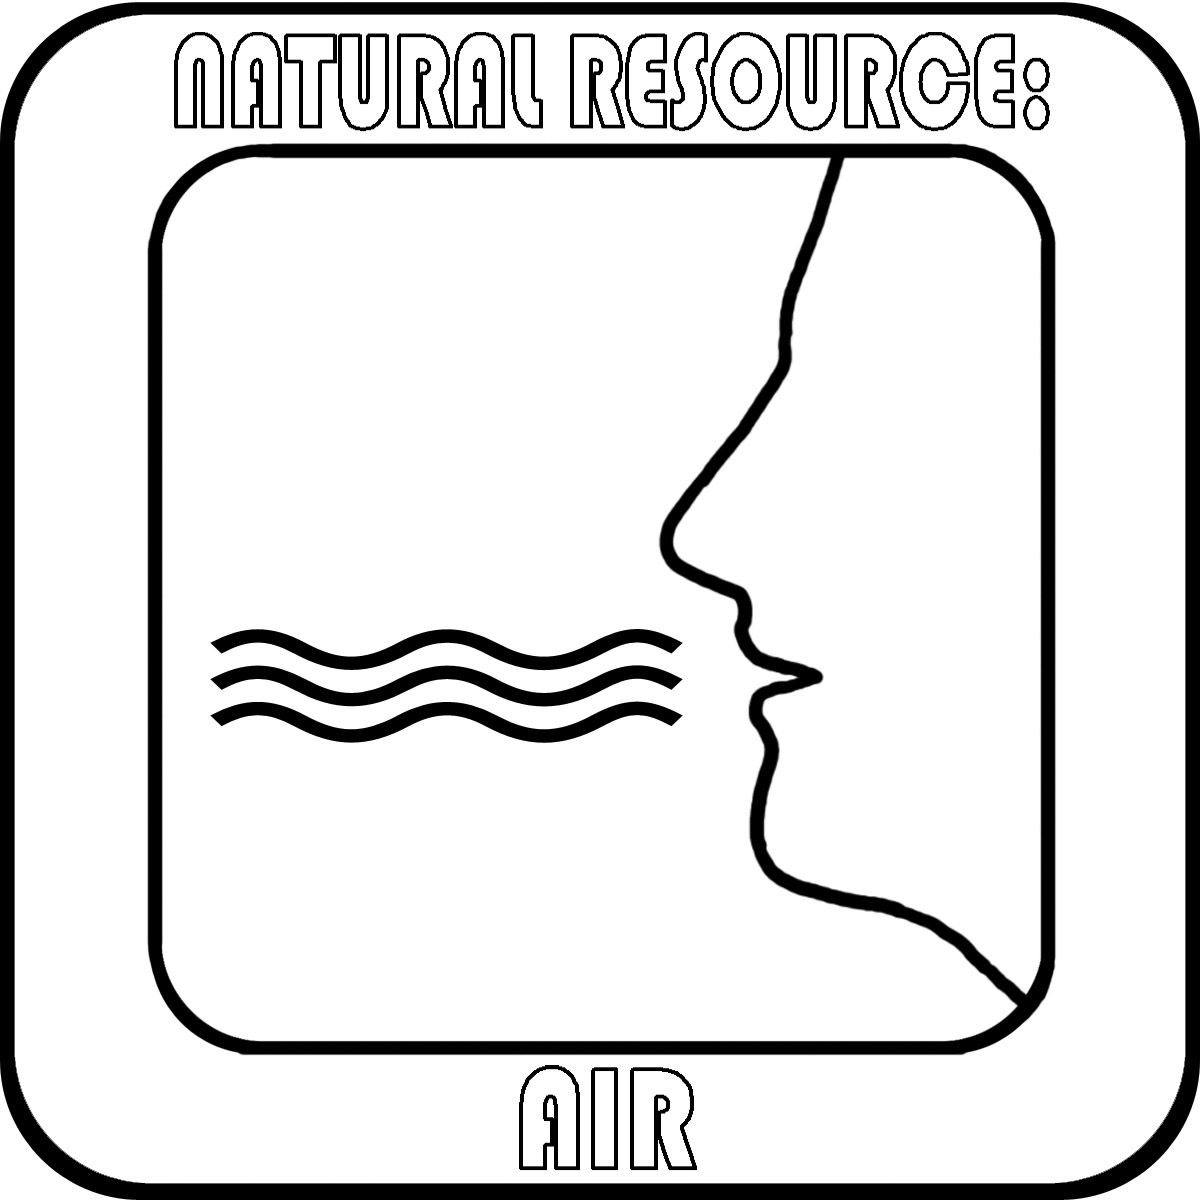 Clip Art  Natural Resources  Livestock B W Unlabeled   Abcteach